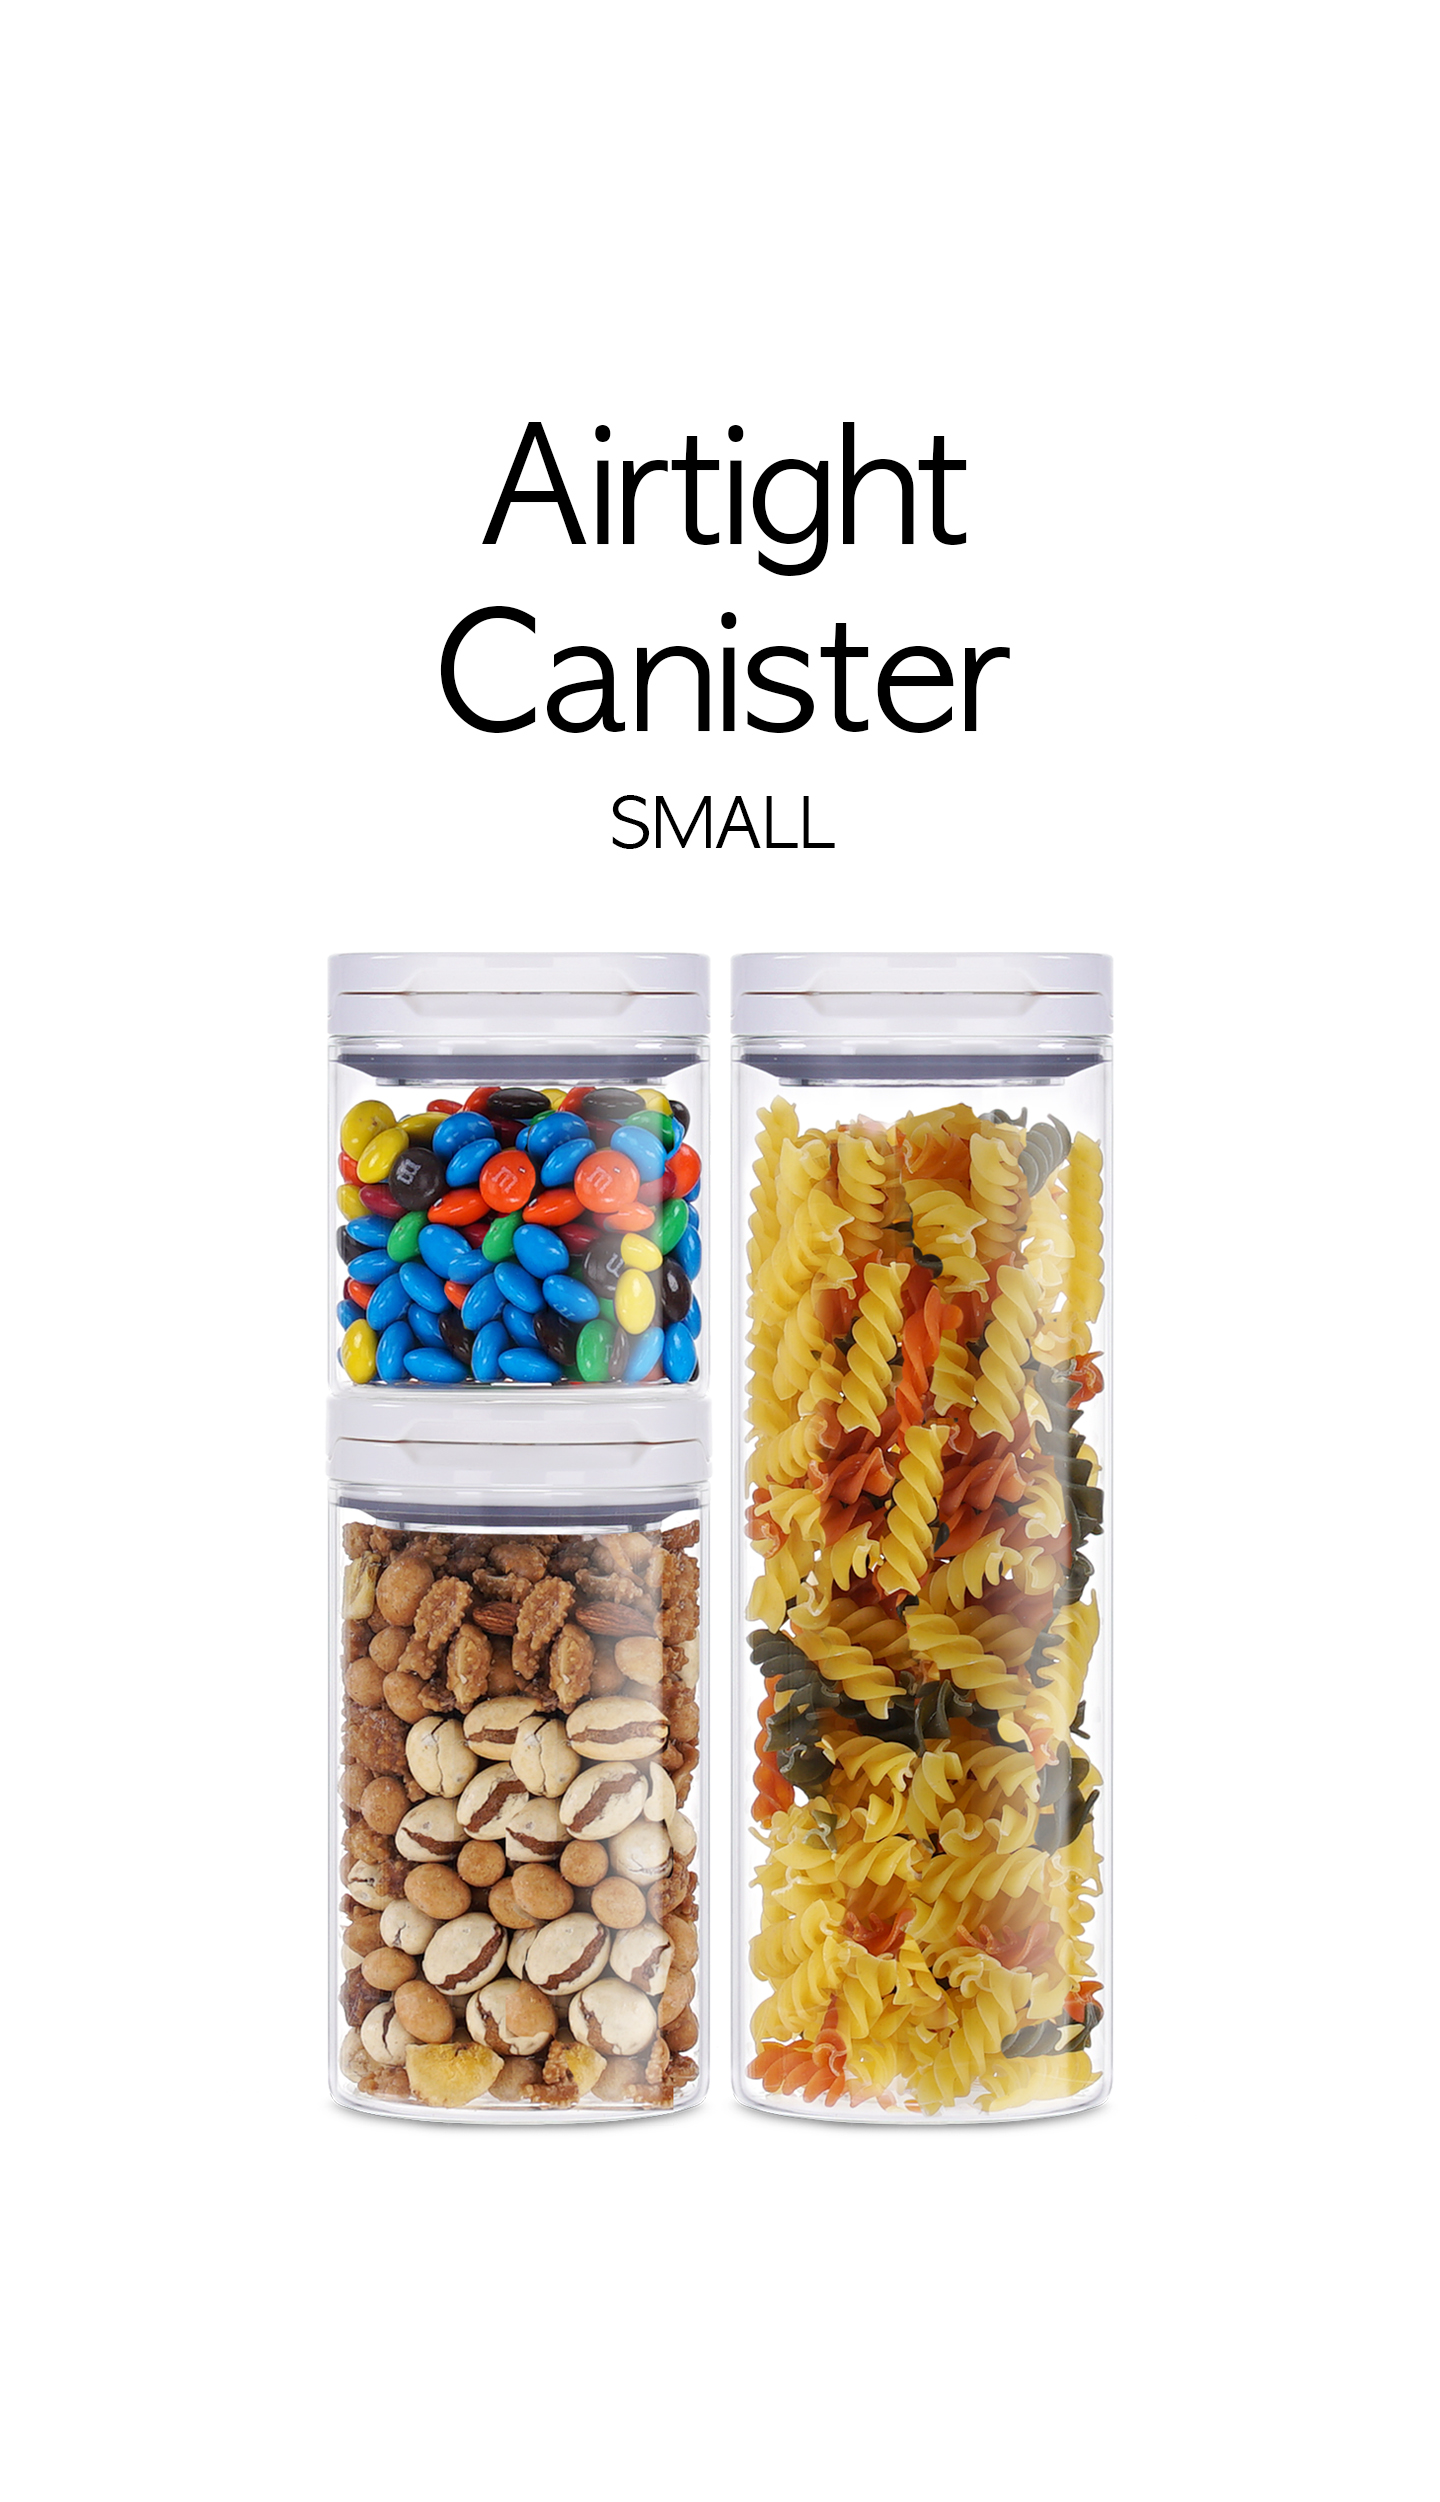 Airtight Canister Small 03